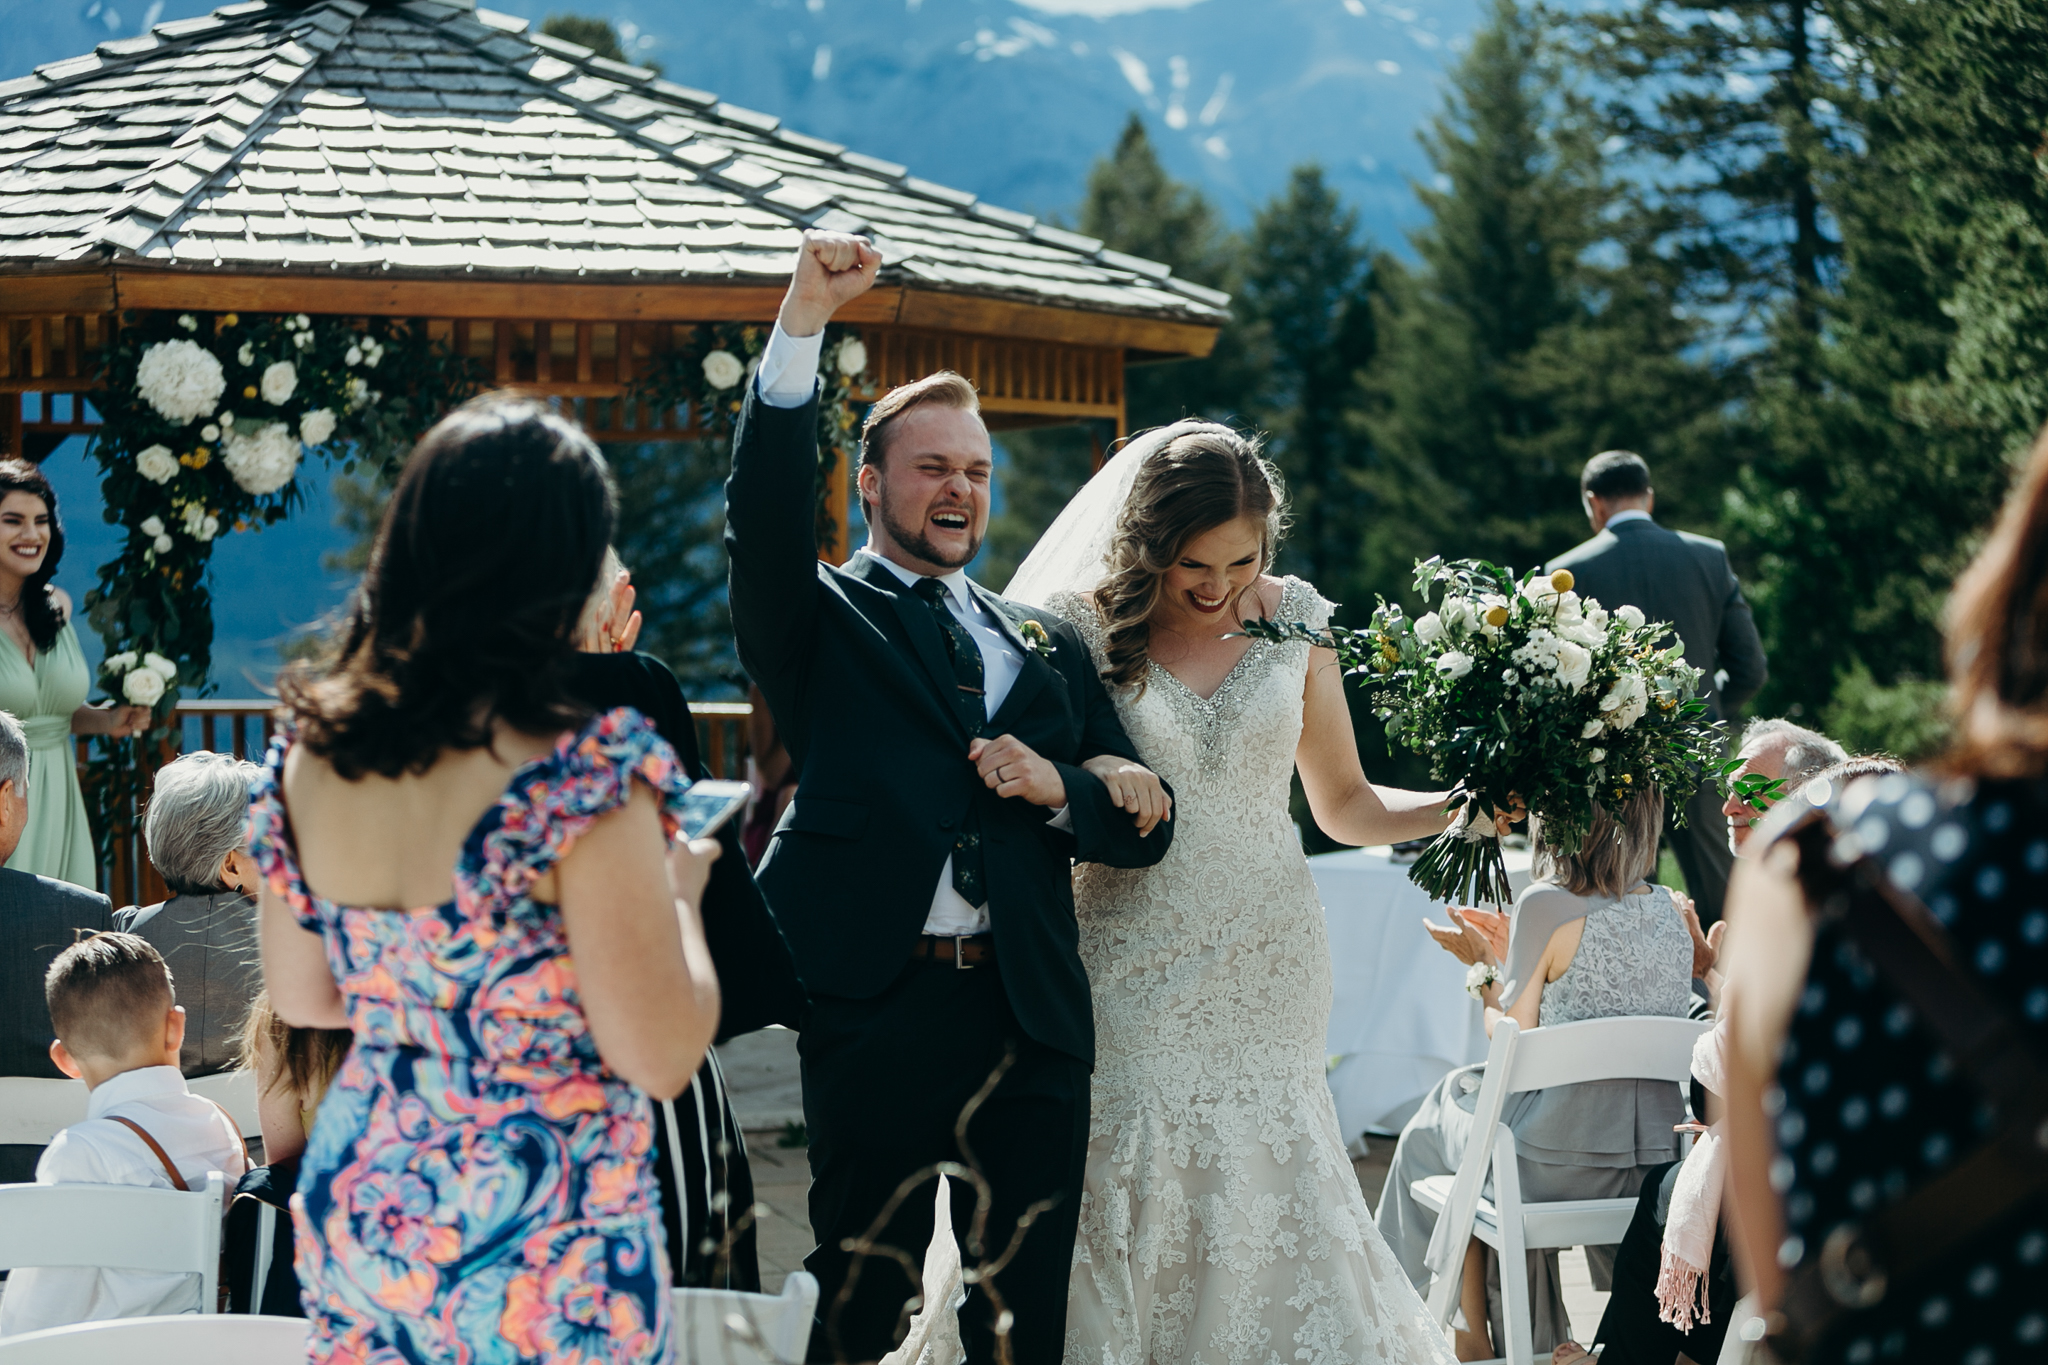 Bride and groom celebrate Wedding ceremony at gazebo Silvertip Resort Canmore AB rocky mountain wedding